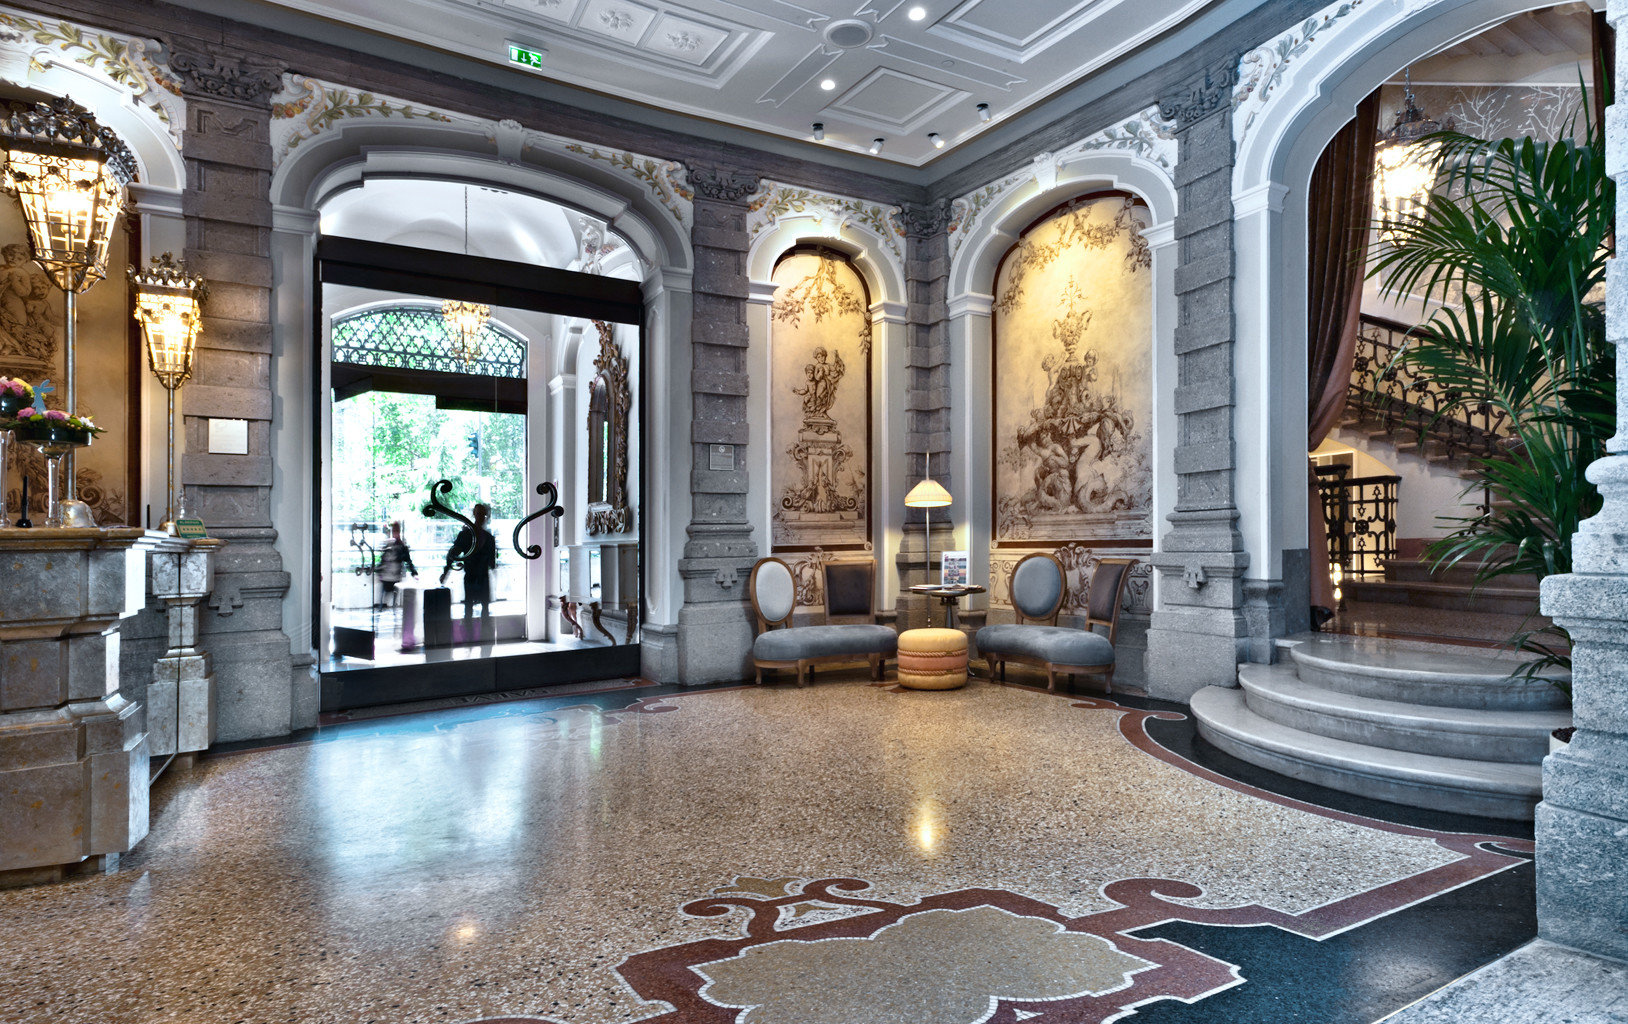 Boutique City Hip Lobby Lounge building plaza mansion Courtyard arch palace tourist attraction stone colonnade